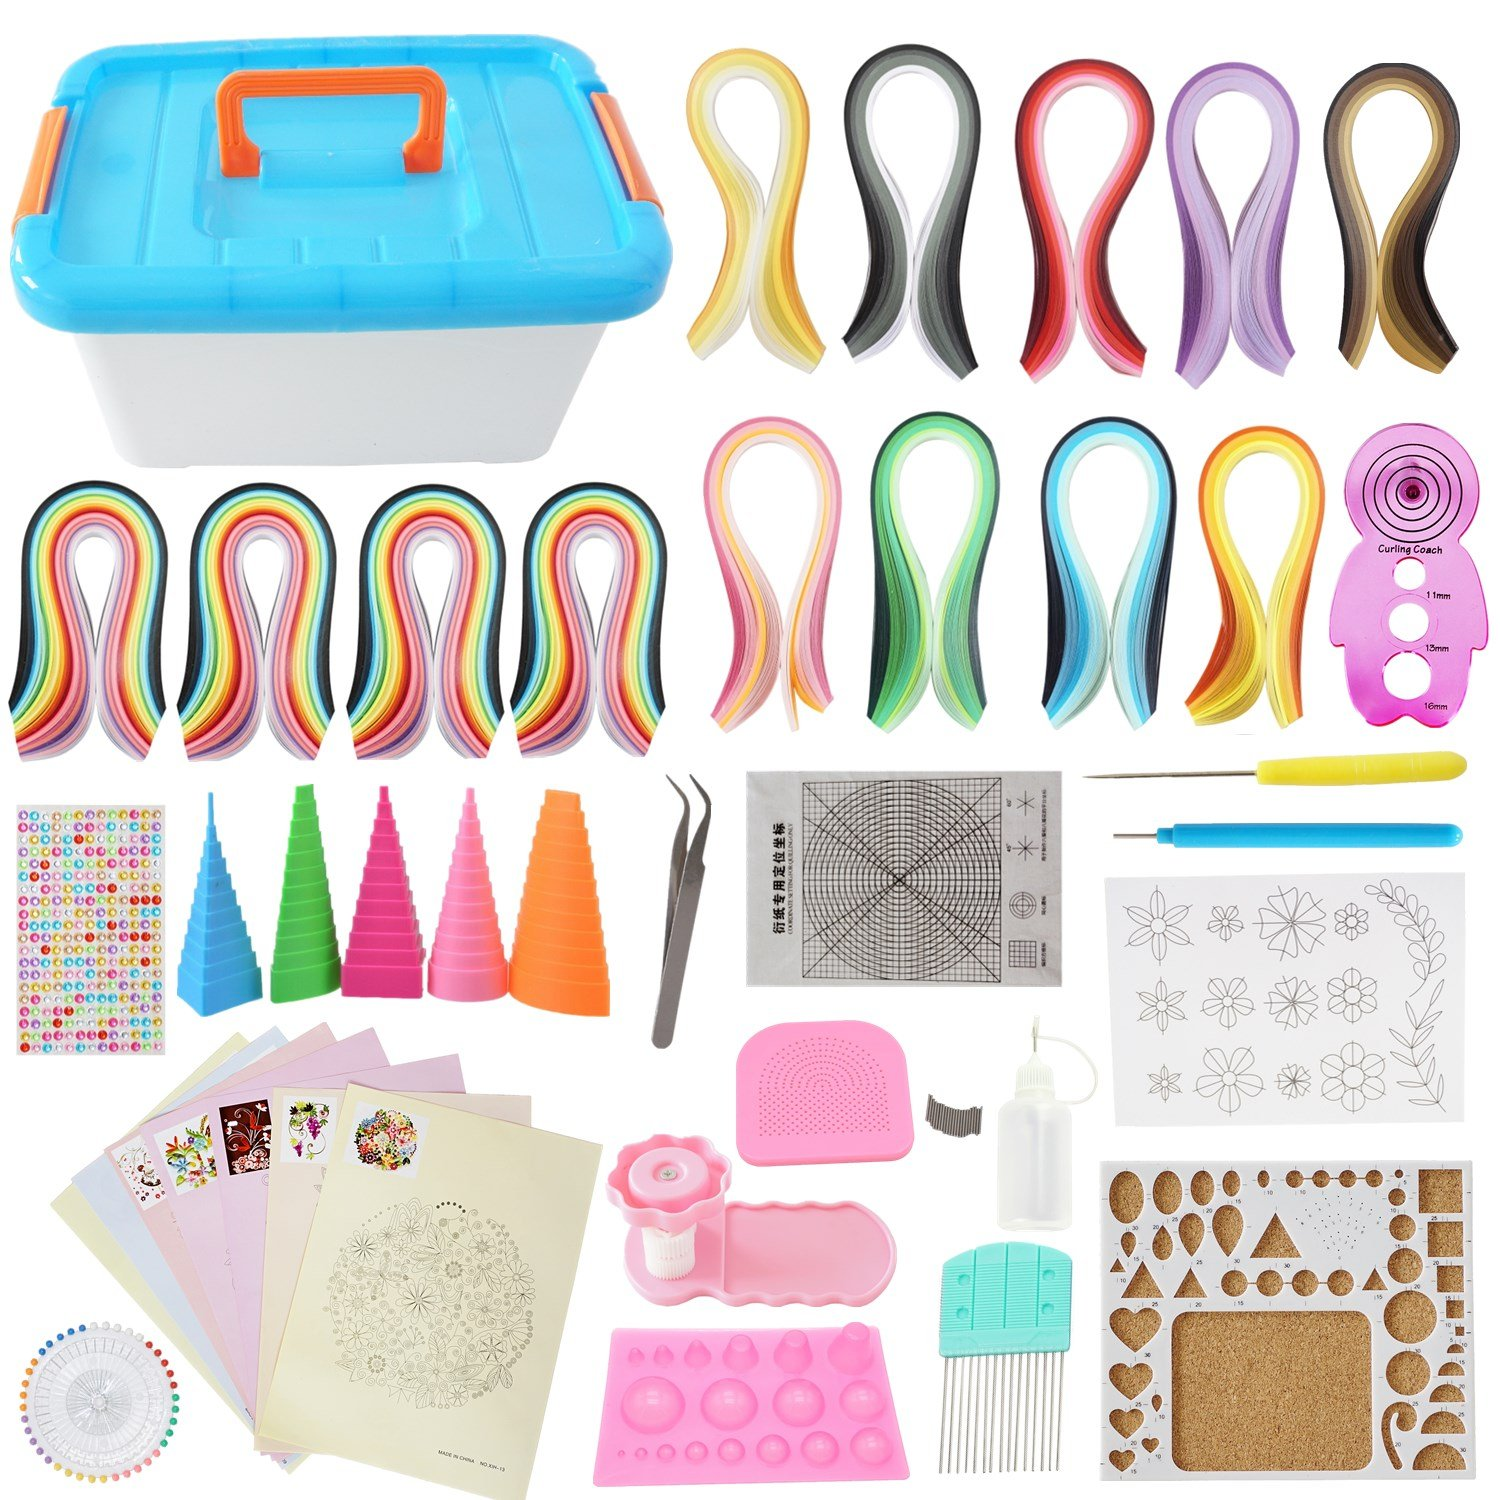 All-in-One Quilling Kit Complete Quilling Paper Set with 1940 Strips + Necessary Tools + Storage Box Suitcase for Beginners, Advanced Quiller, Kids and Adults Moumou